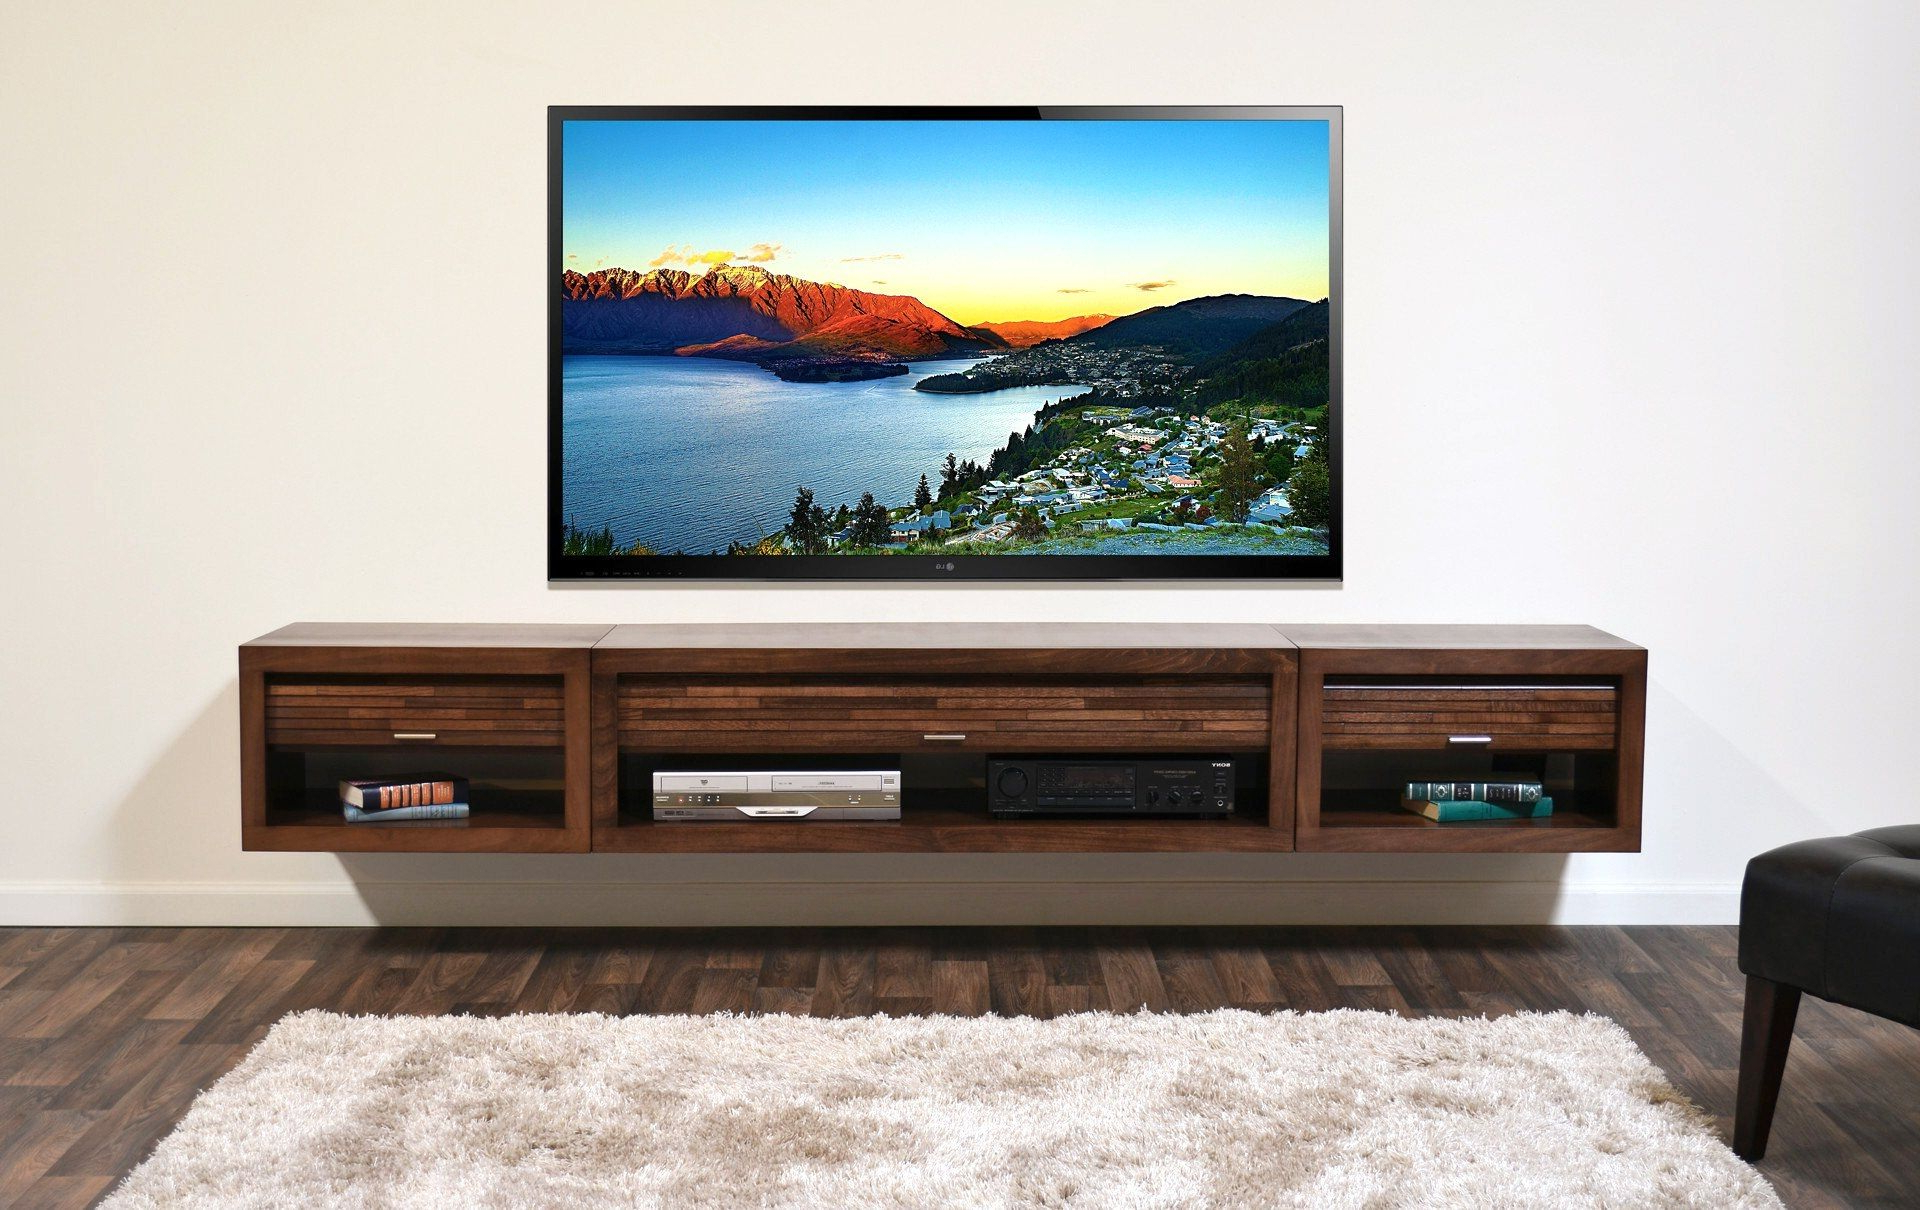 Wall Mounted Tv Stands For Flat Screens Within Current Wall Mount Tv Stands — Allin The Details : Tips For Beautify Your (View 17 of 20)